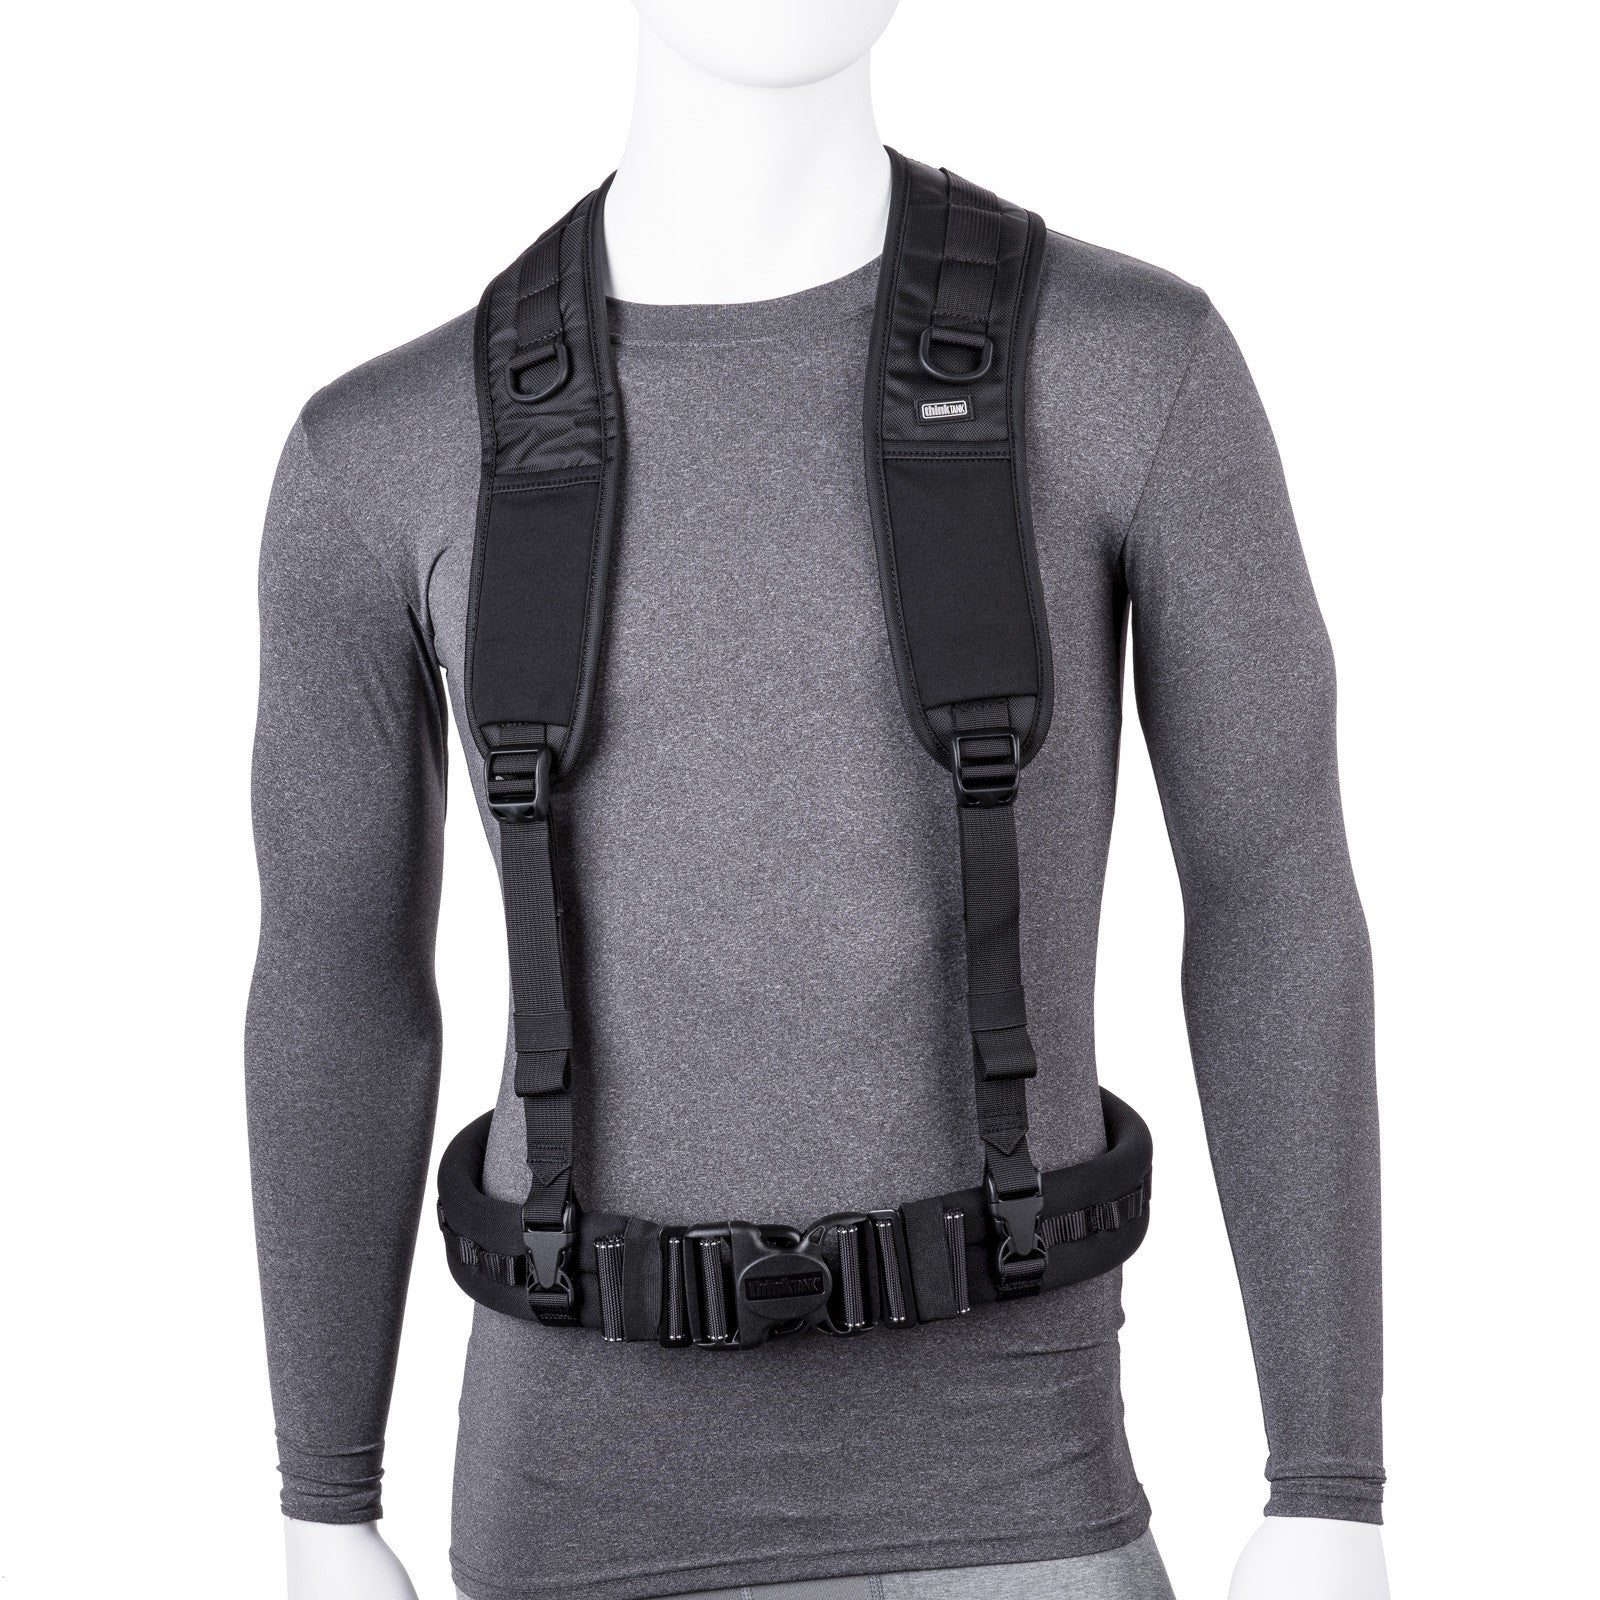 Pixel Racing Harness attaches to belt to relieve weight from your around your waist.